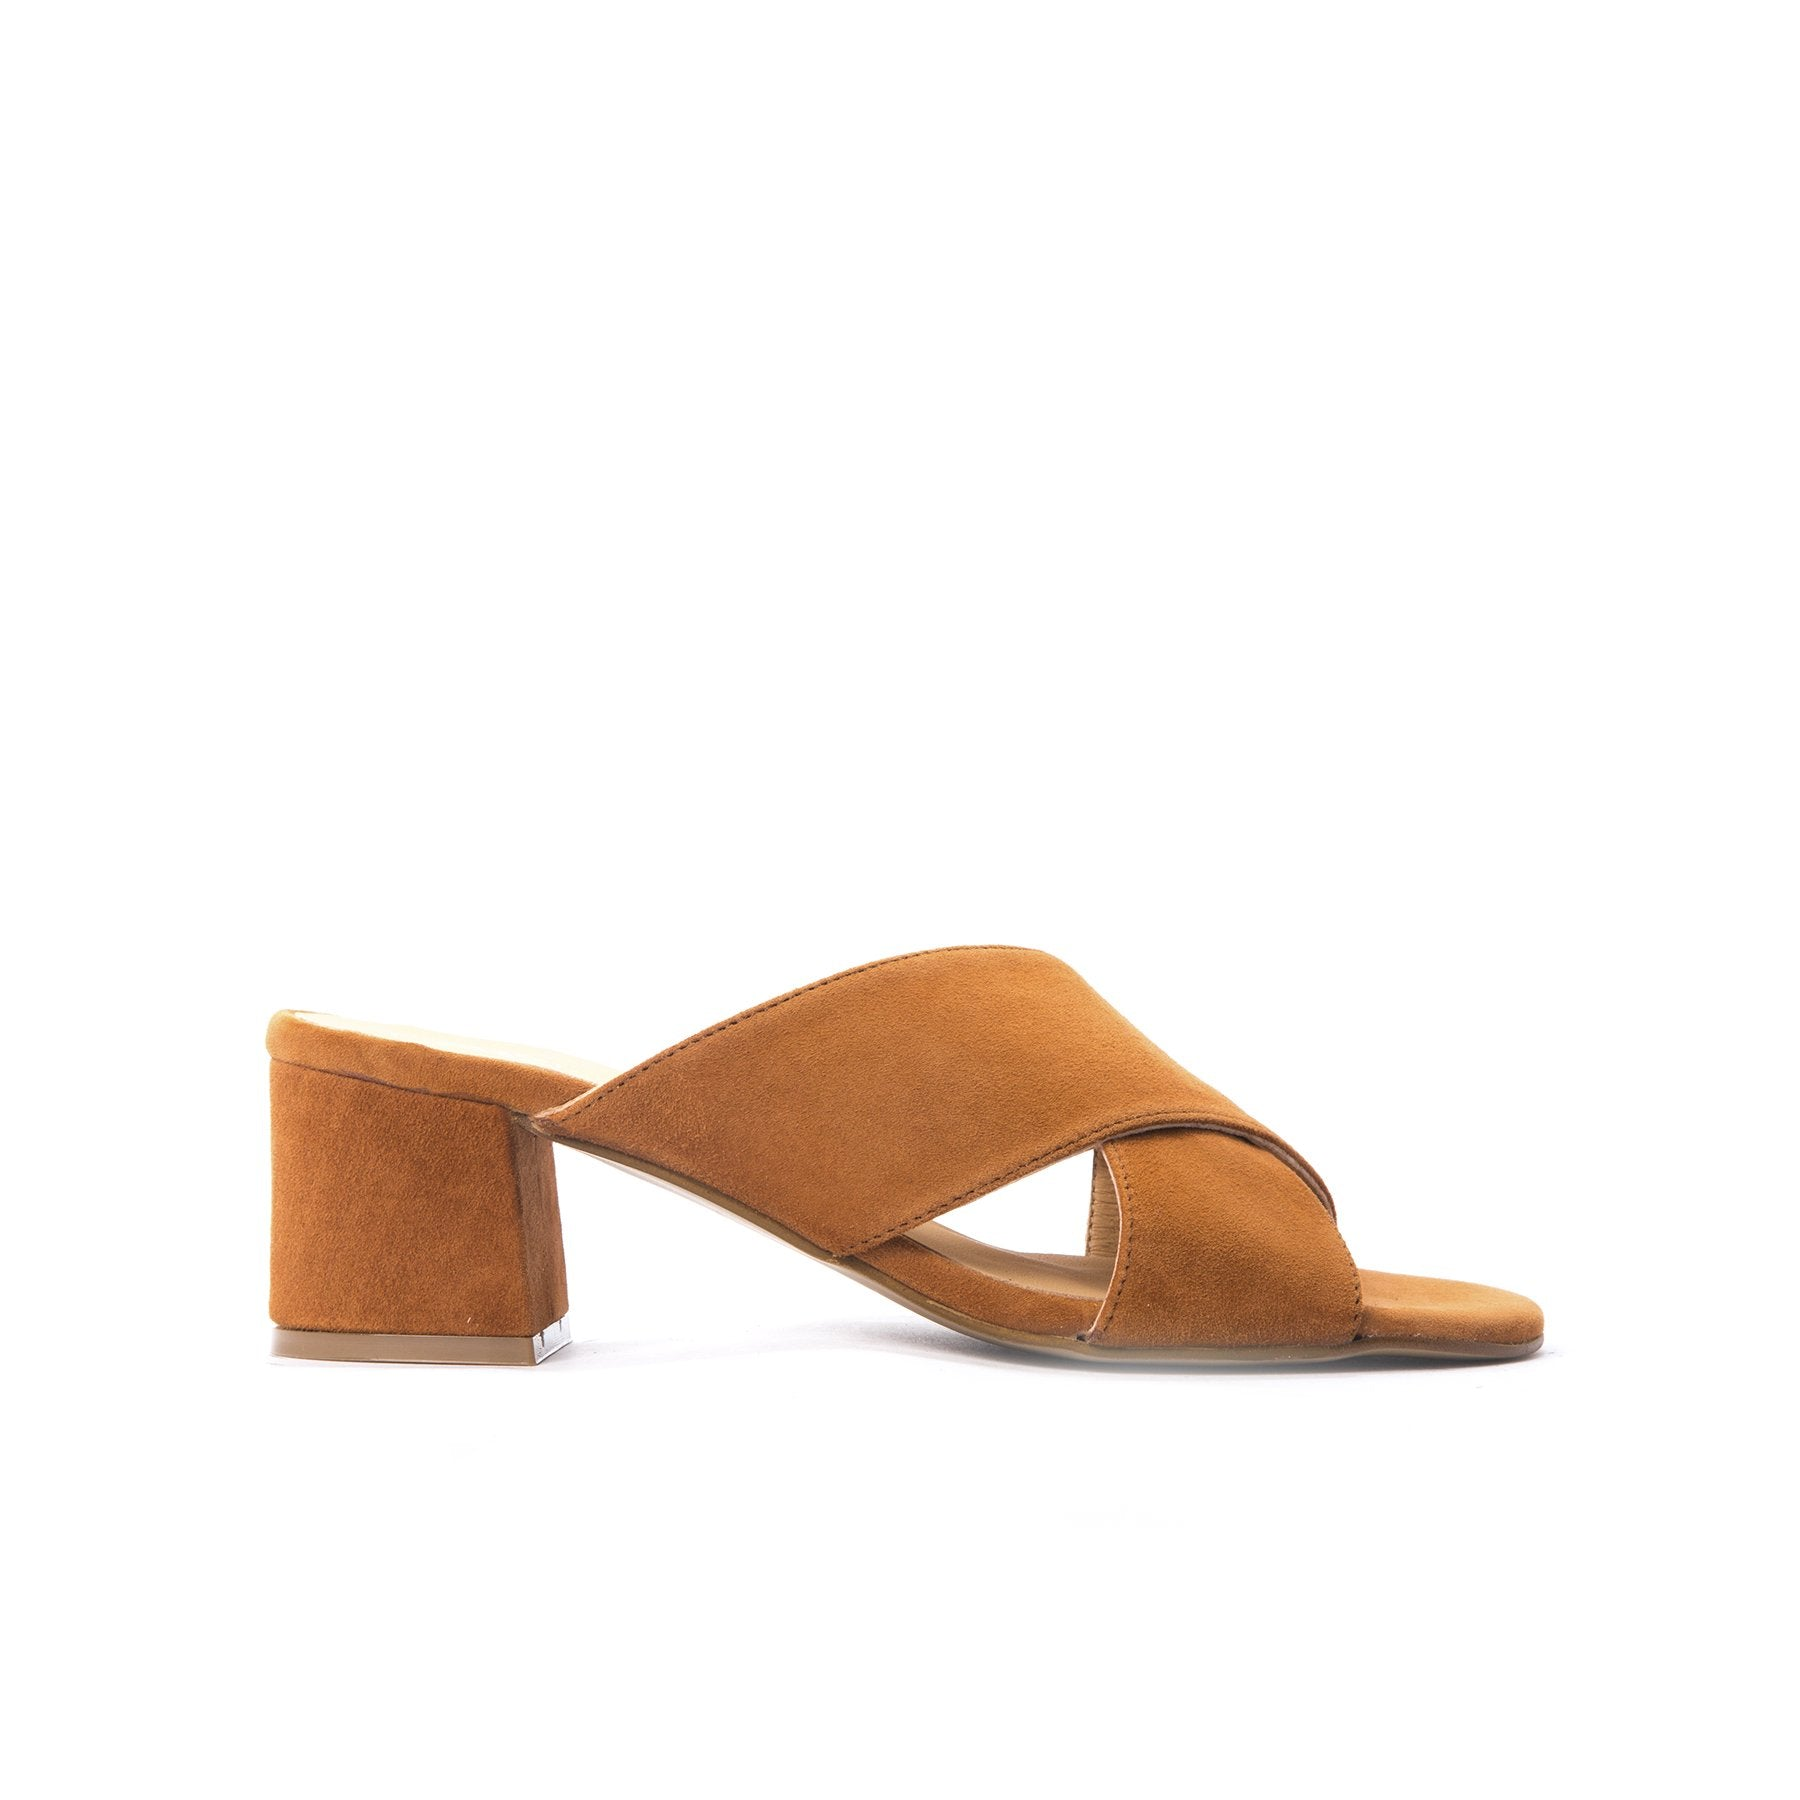 Illy Tan Suede